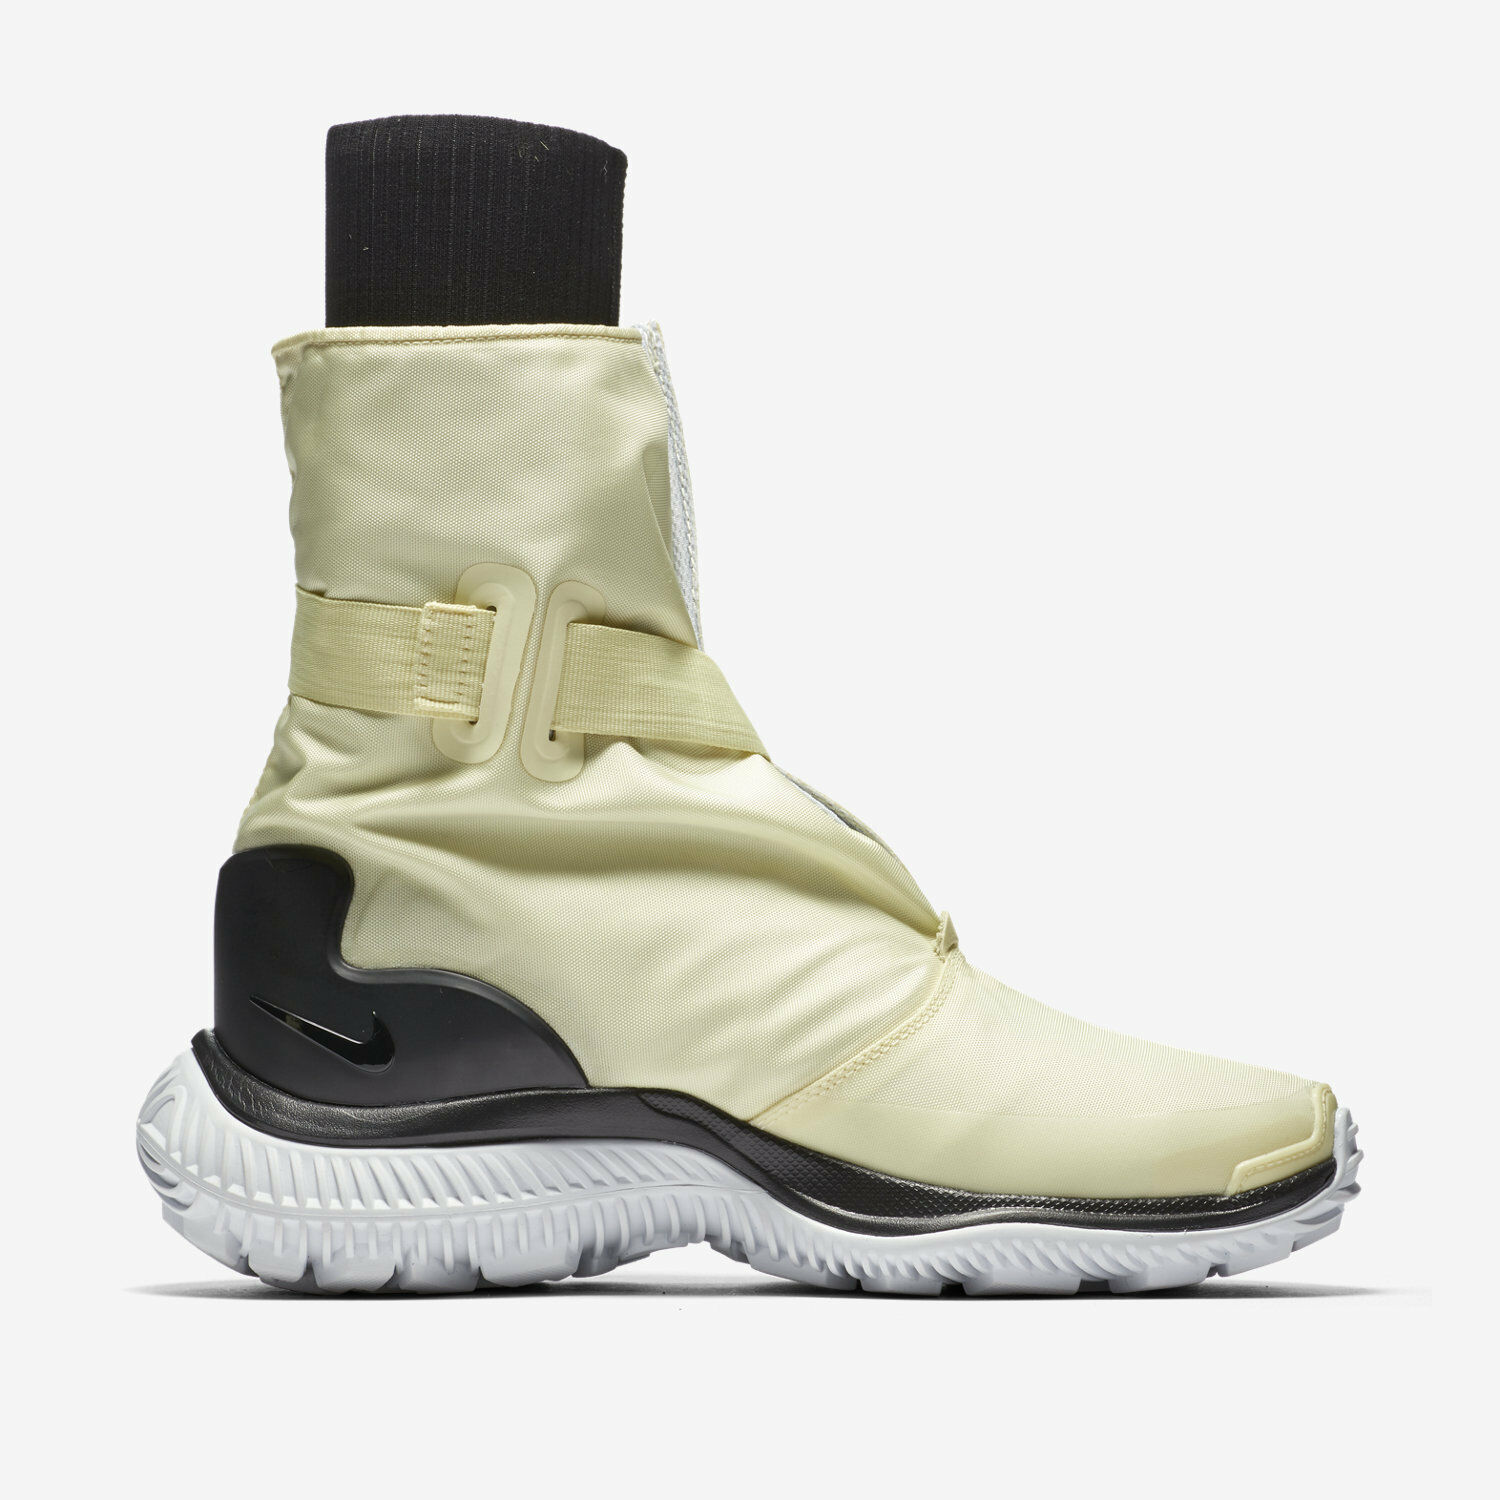 NIKE LAB NSW Gaiter Boot Women's Sz 11 11 11 Yellow Pale Citron Black AA0528 700  250 0c72f9